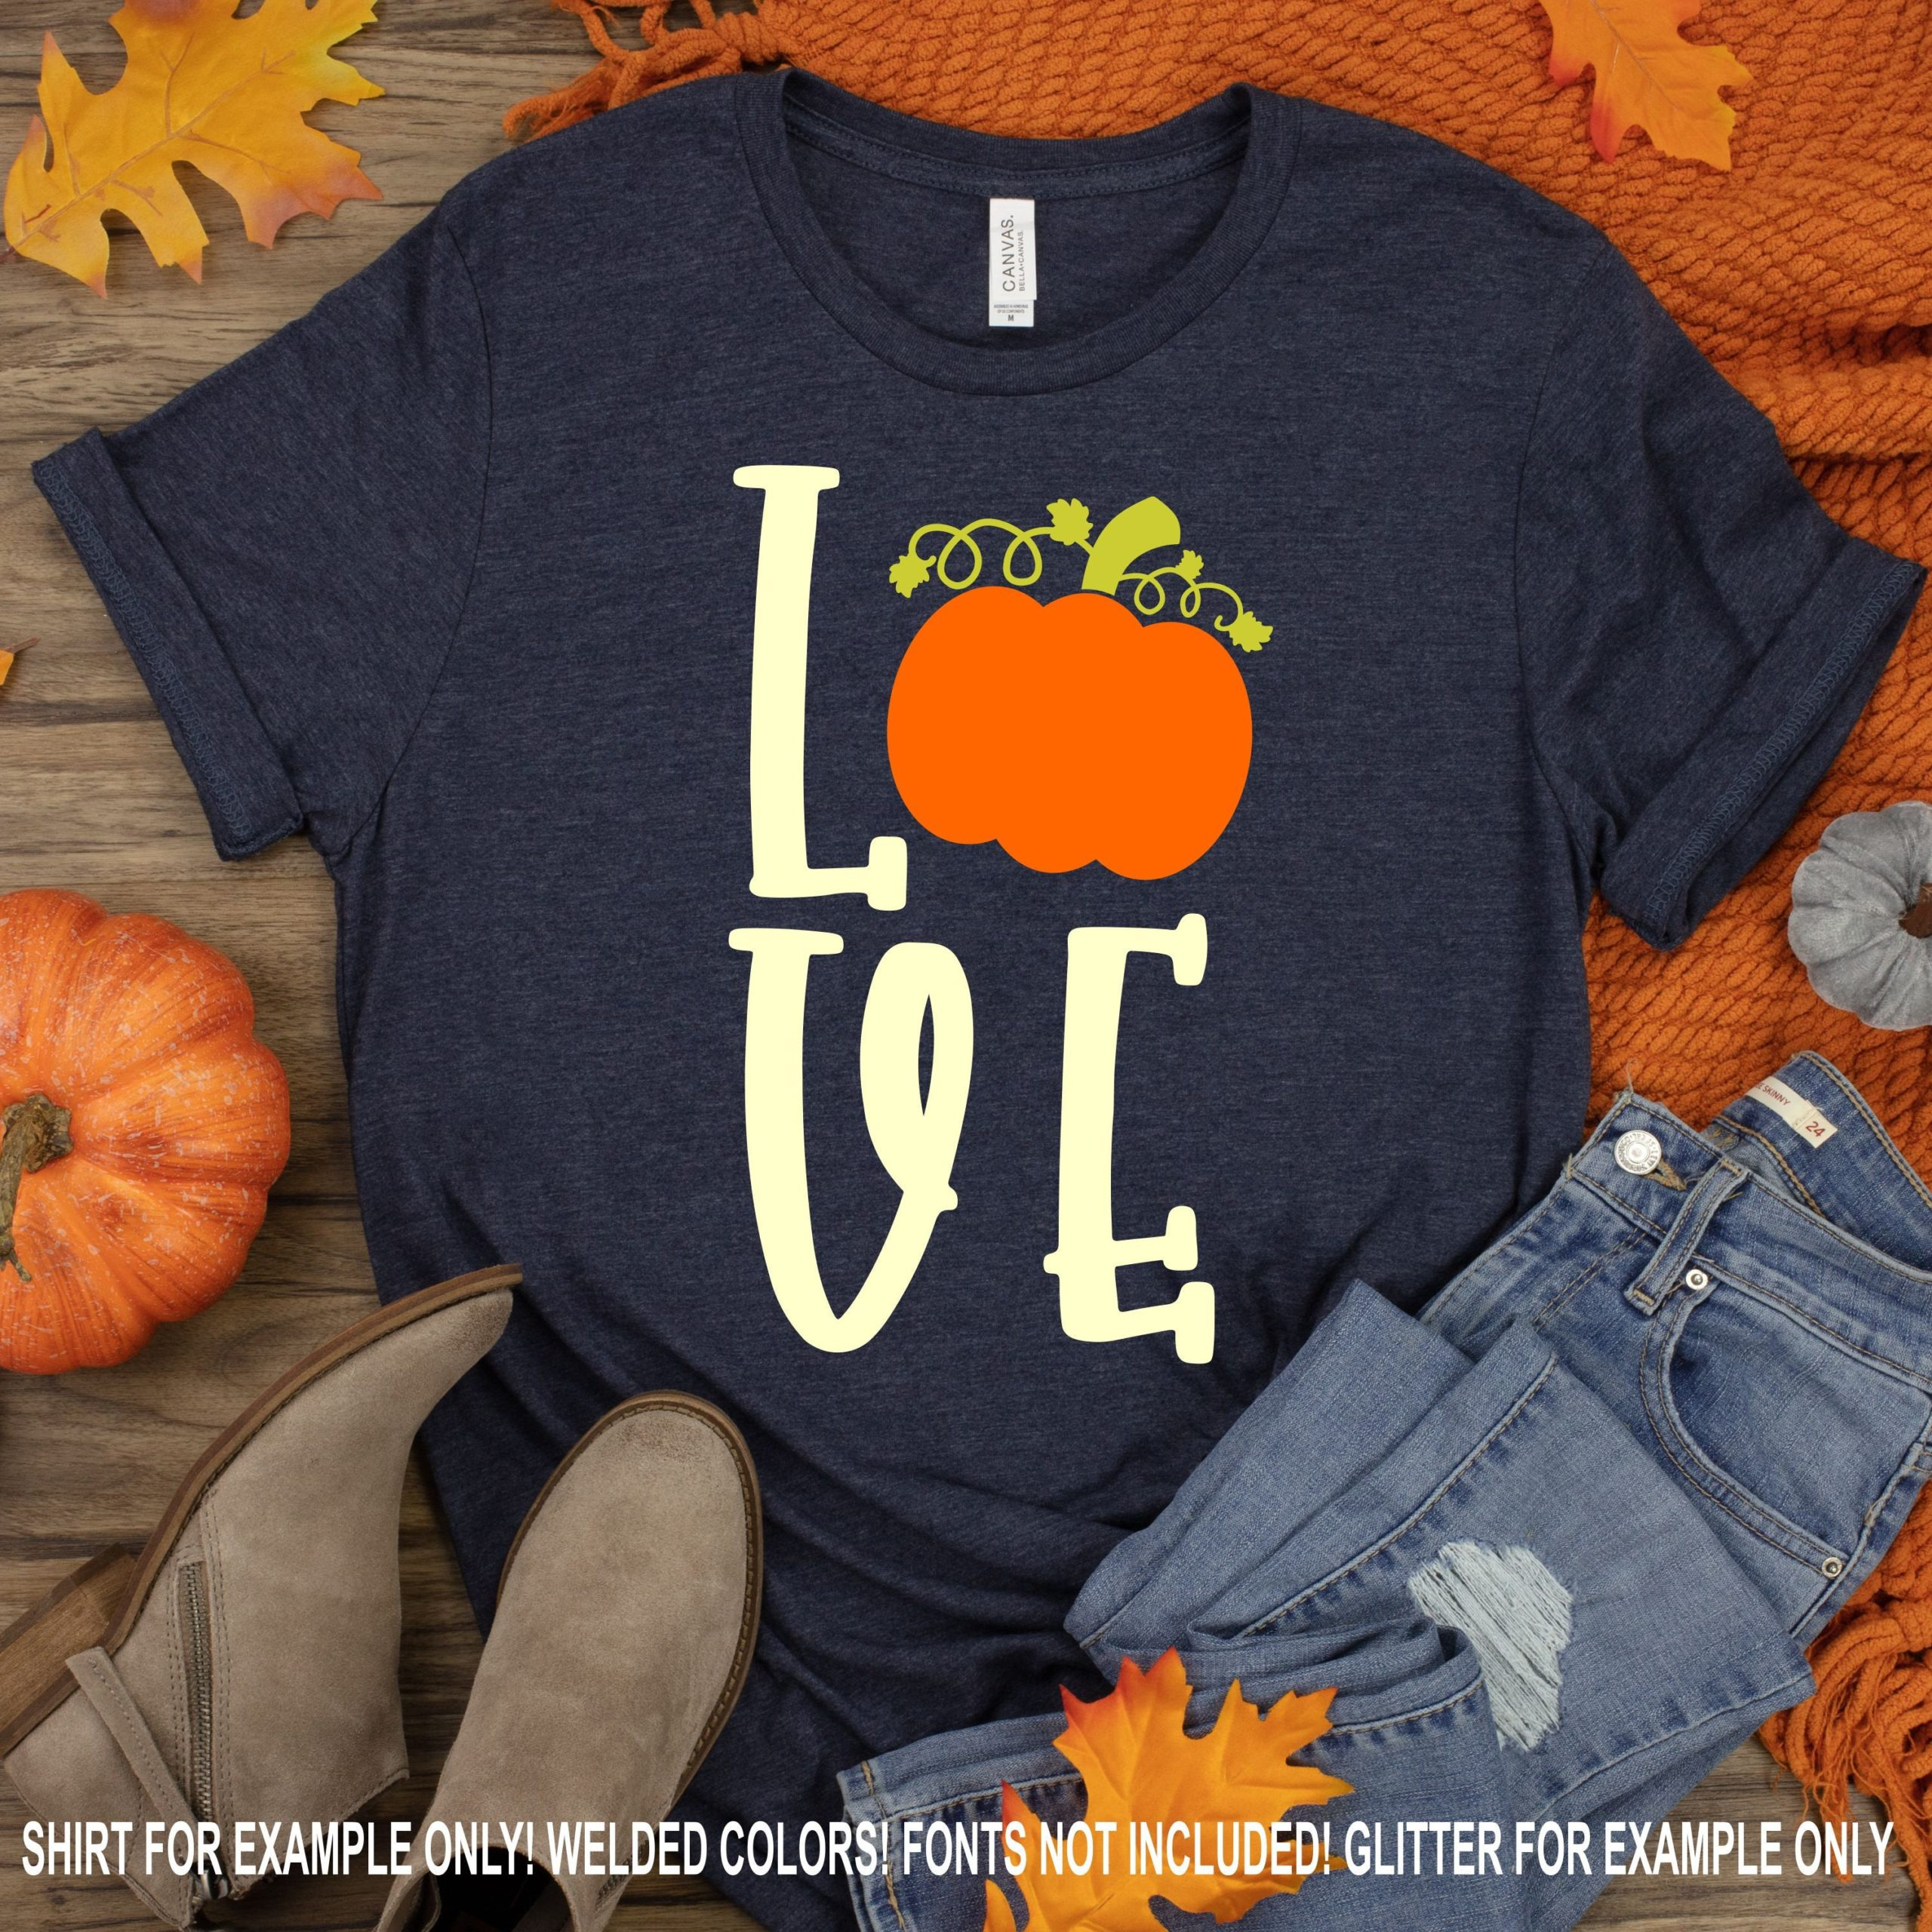 Love-pumpkin-svgpumpkin-svg-funny-fall-svg-fall-svg-pumpkin-love-svg-thanksgiving-cut-files-cut-files-cricut-svgsvg-for-mobile-5f7219d6